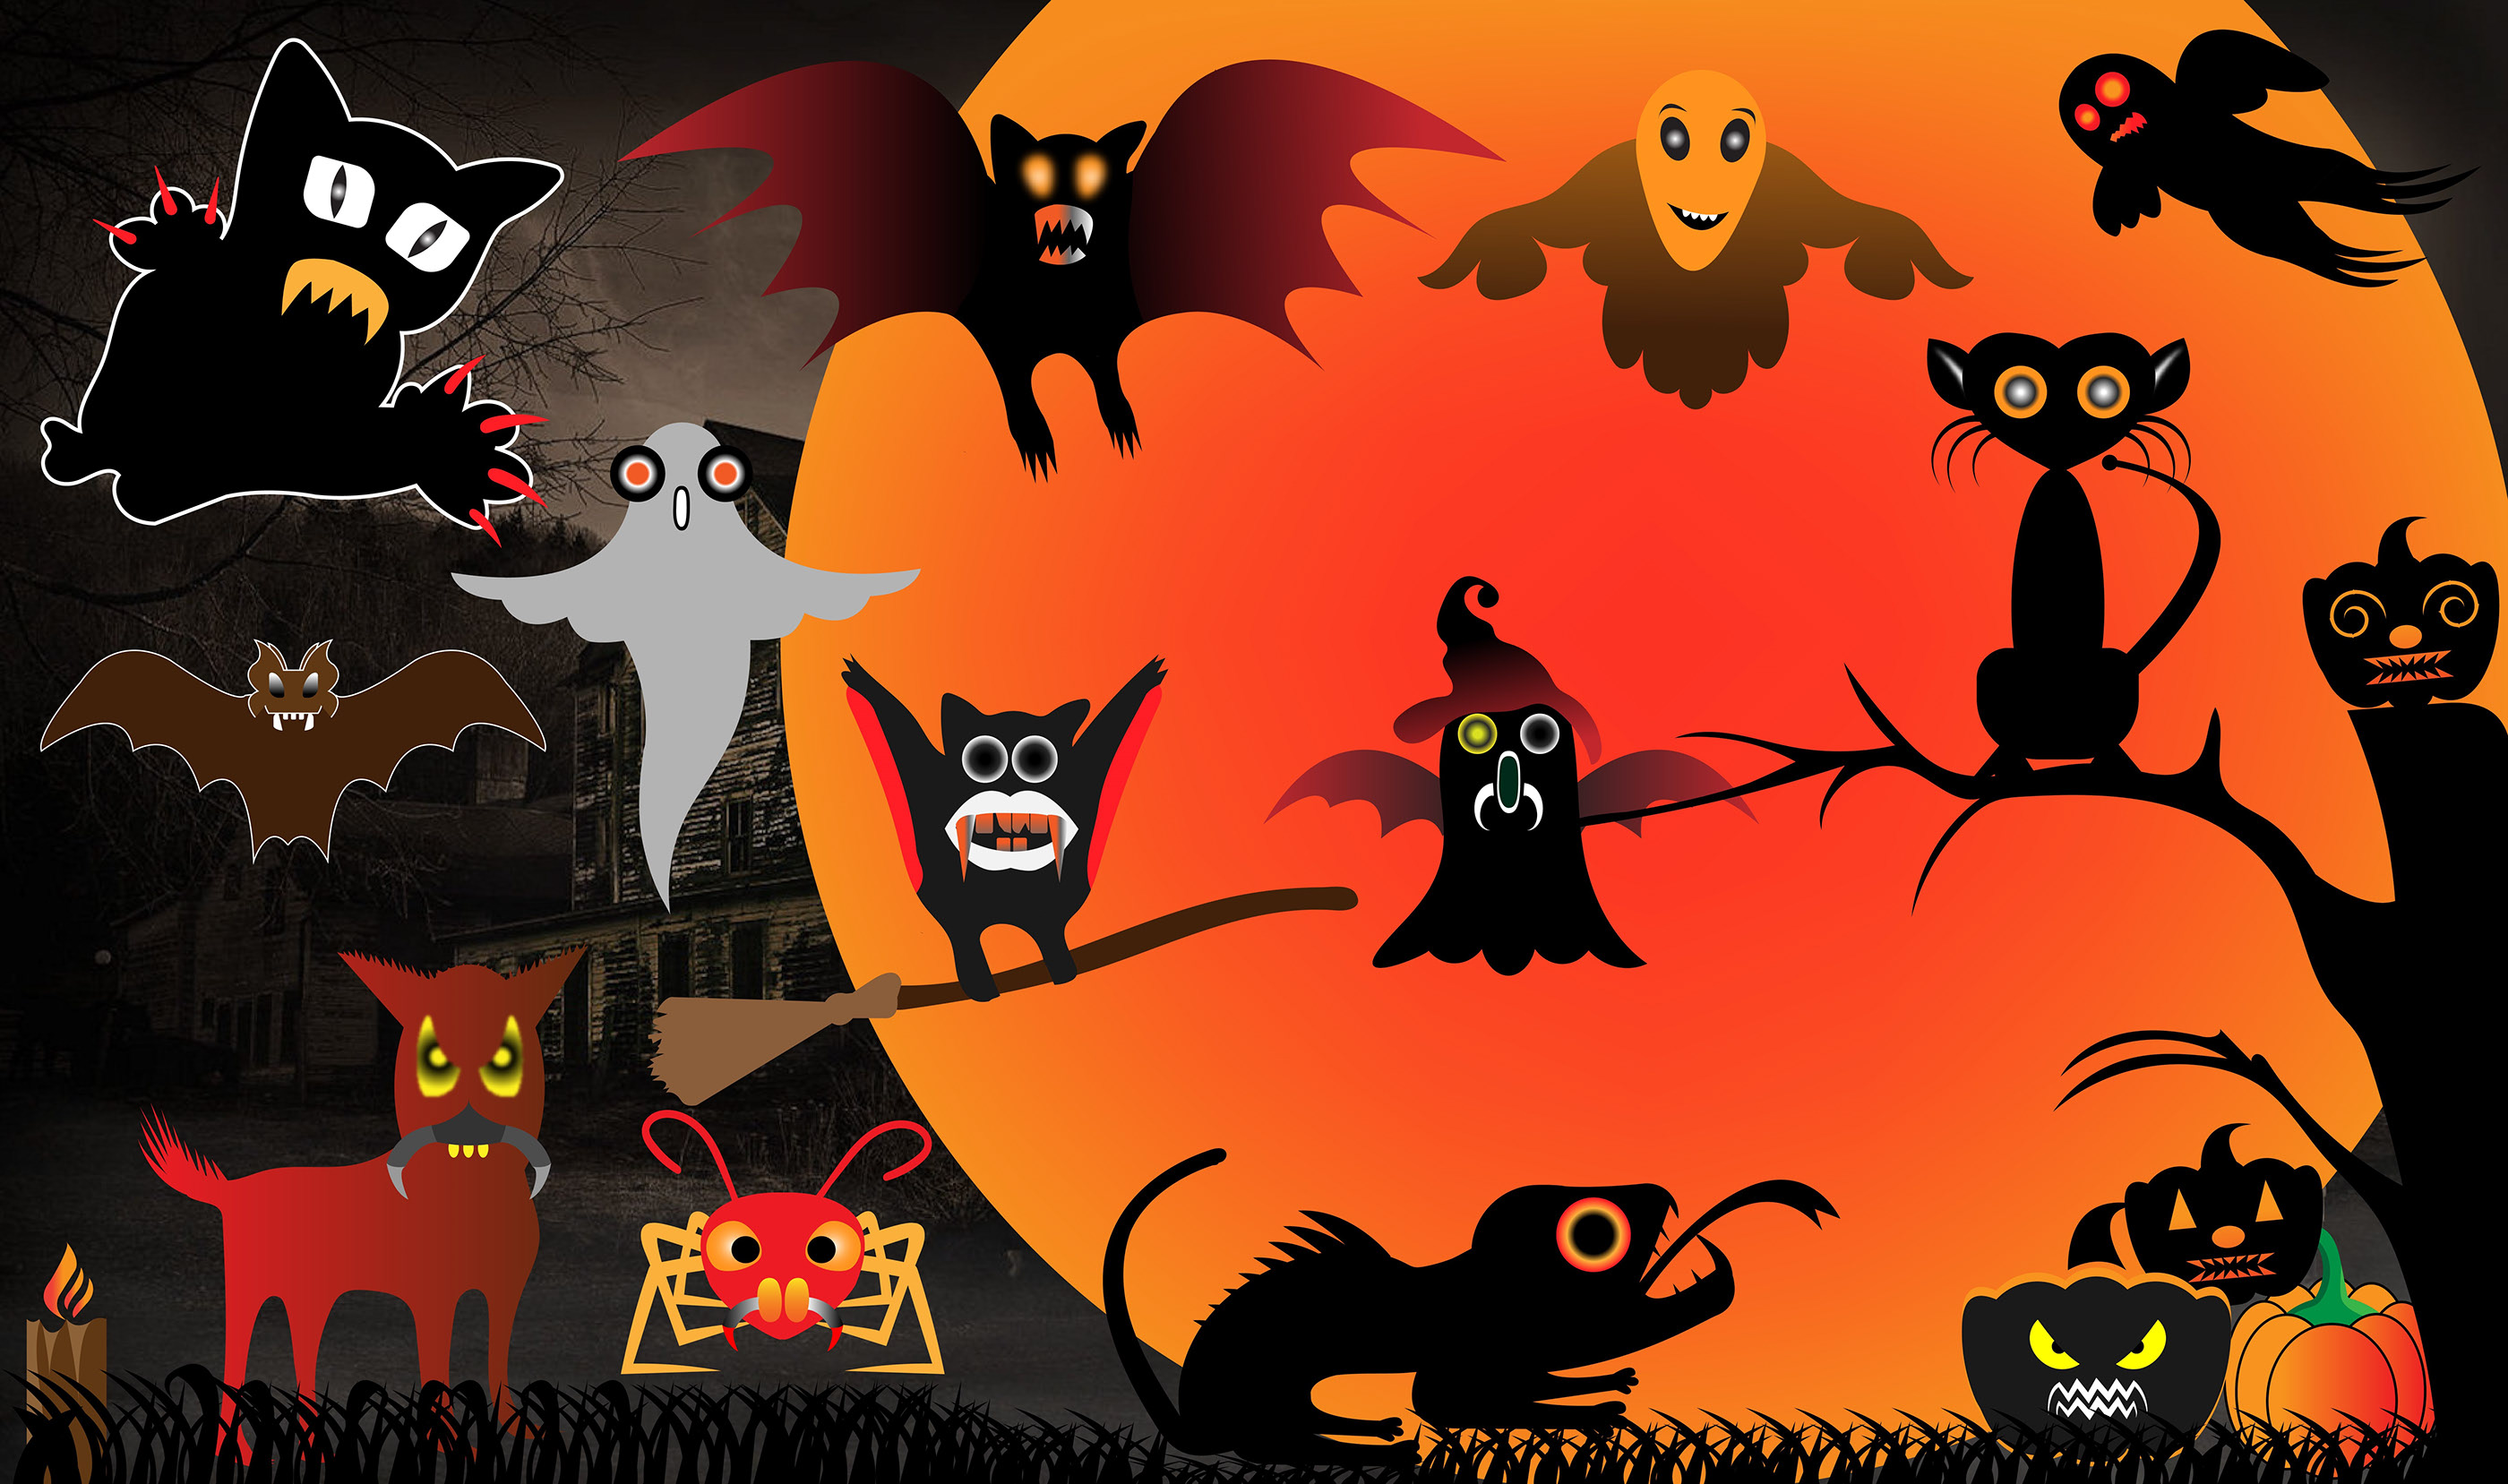 Happy Halloween Scary Logo Bundle - $2 - effe1f71979769.5bd80e687e117